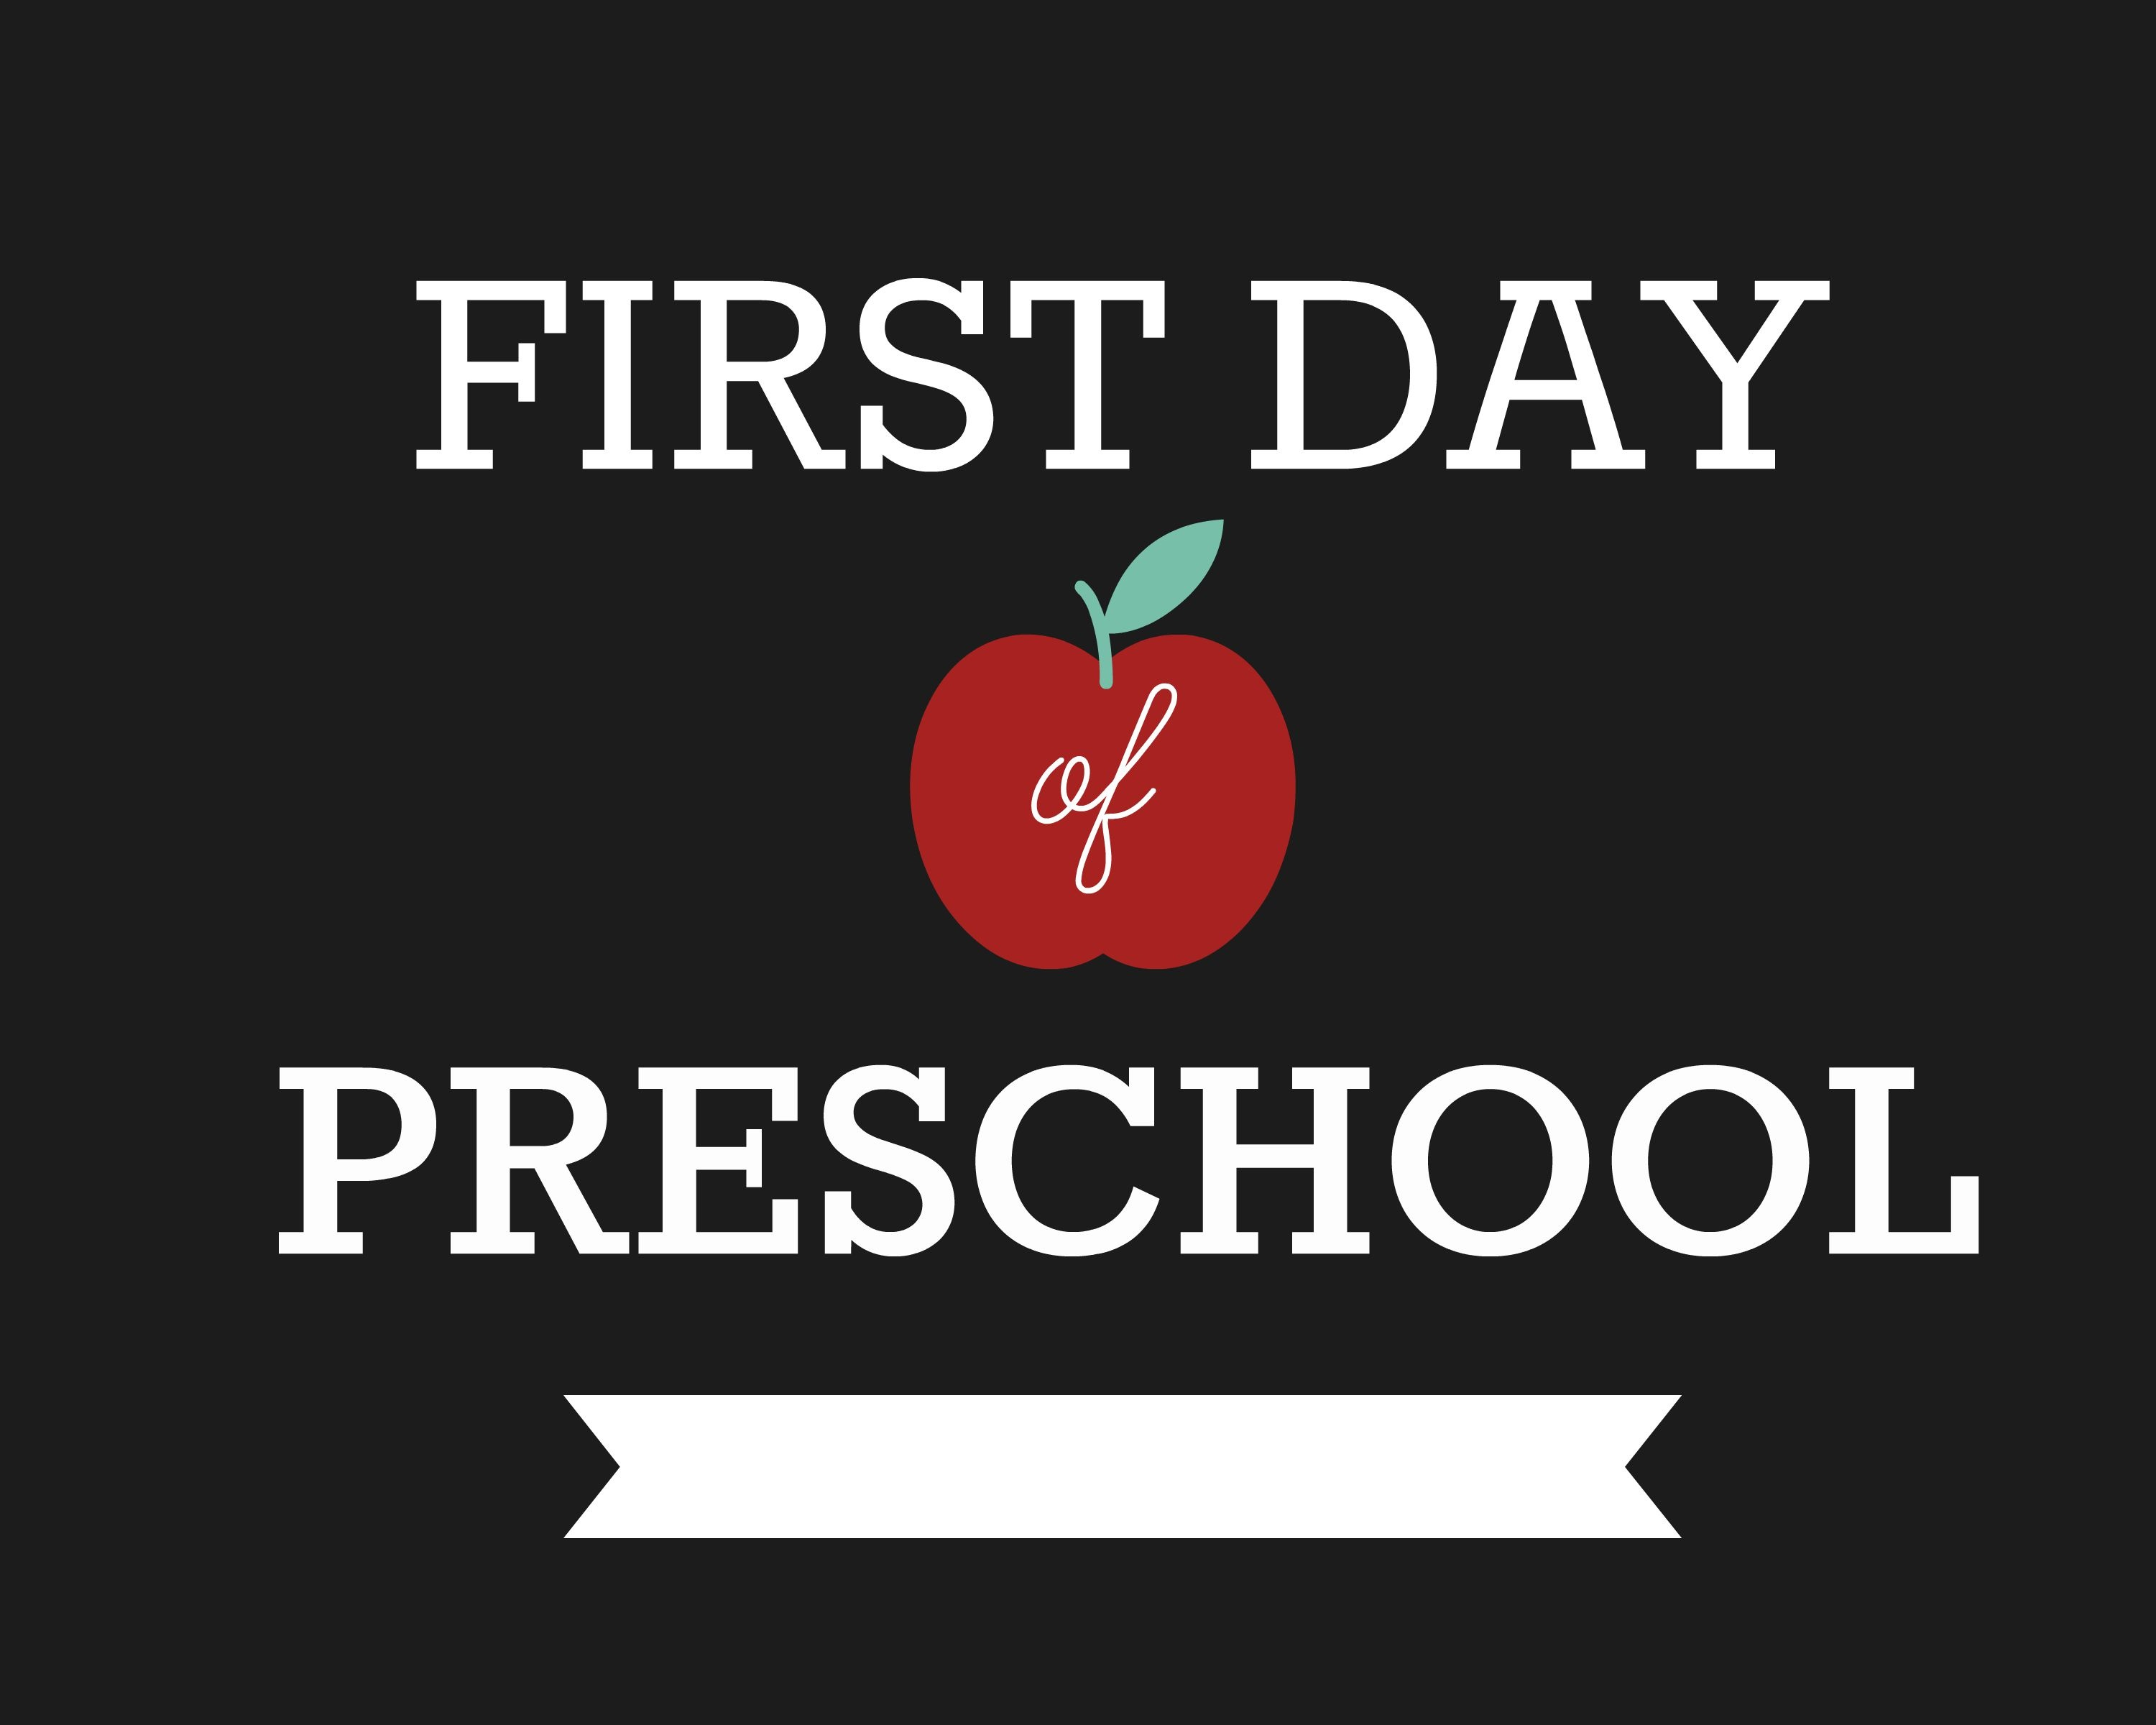 Diy First Day Of School Signs Ruler Craft - Pre-K Up To Grade 12! - Free Printable First Day Of Preschool Sign